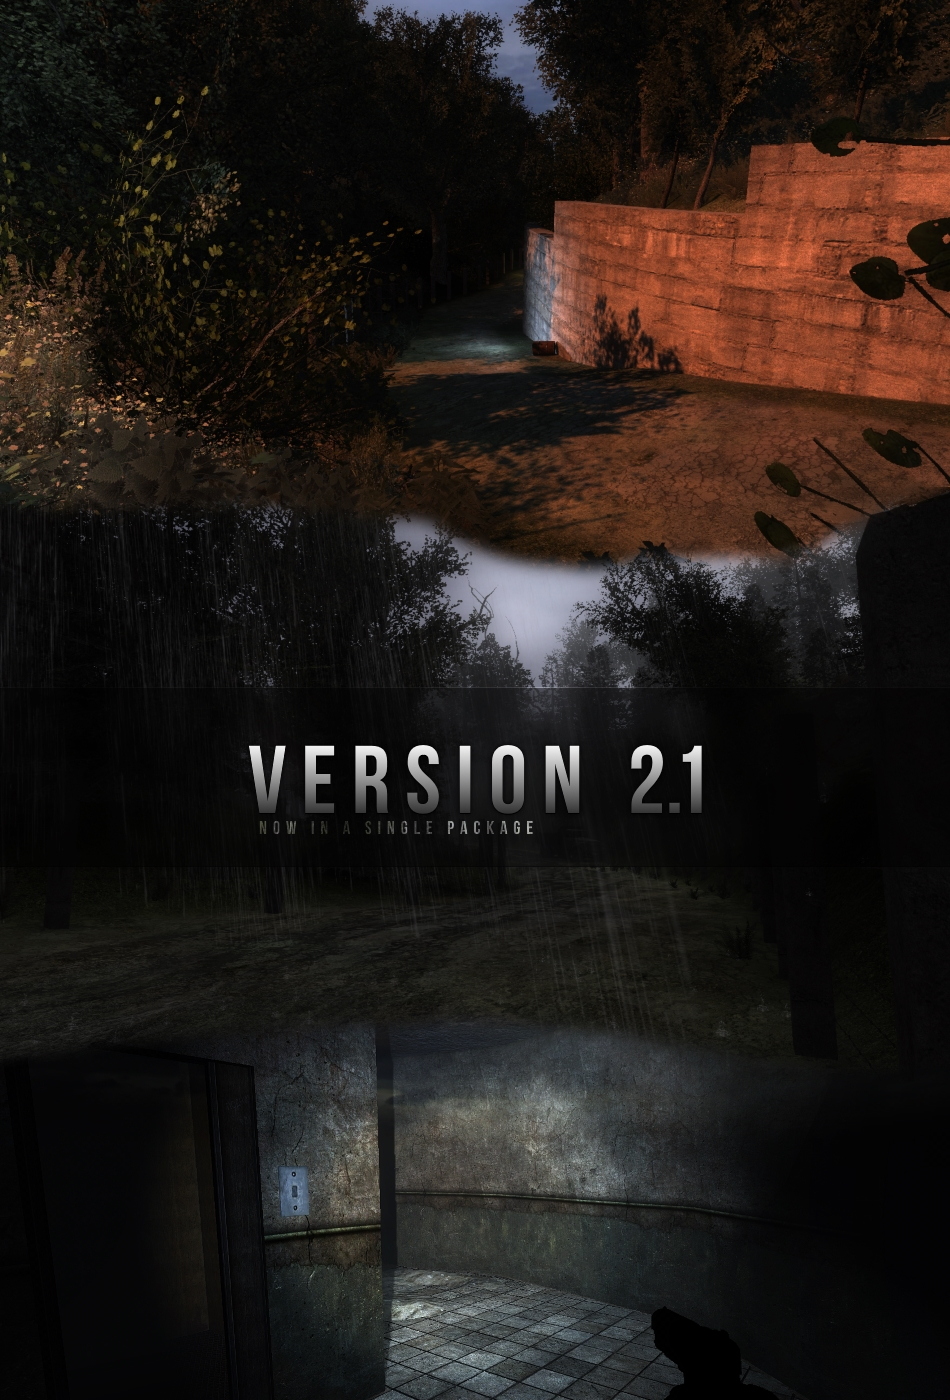 prz2d1 page21